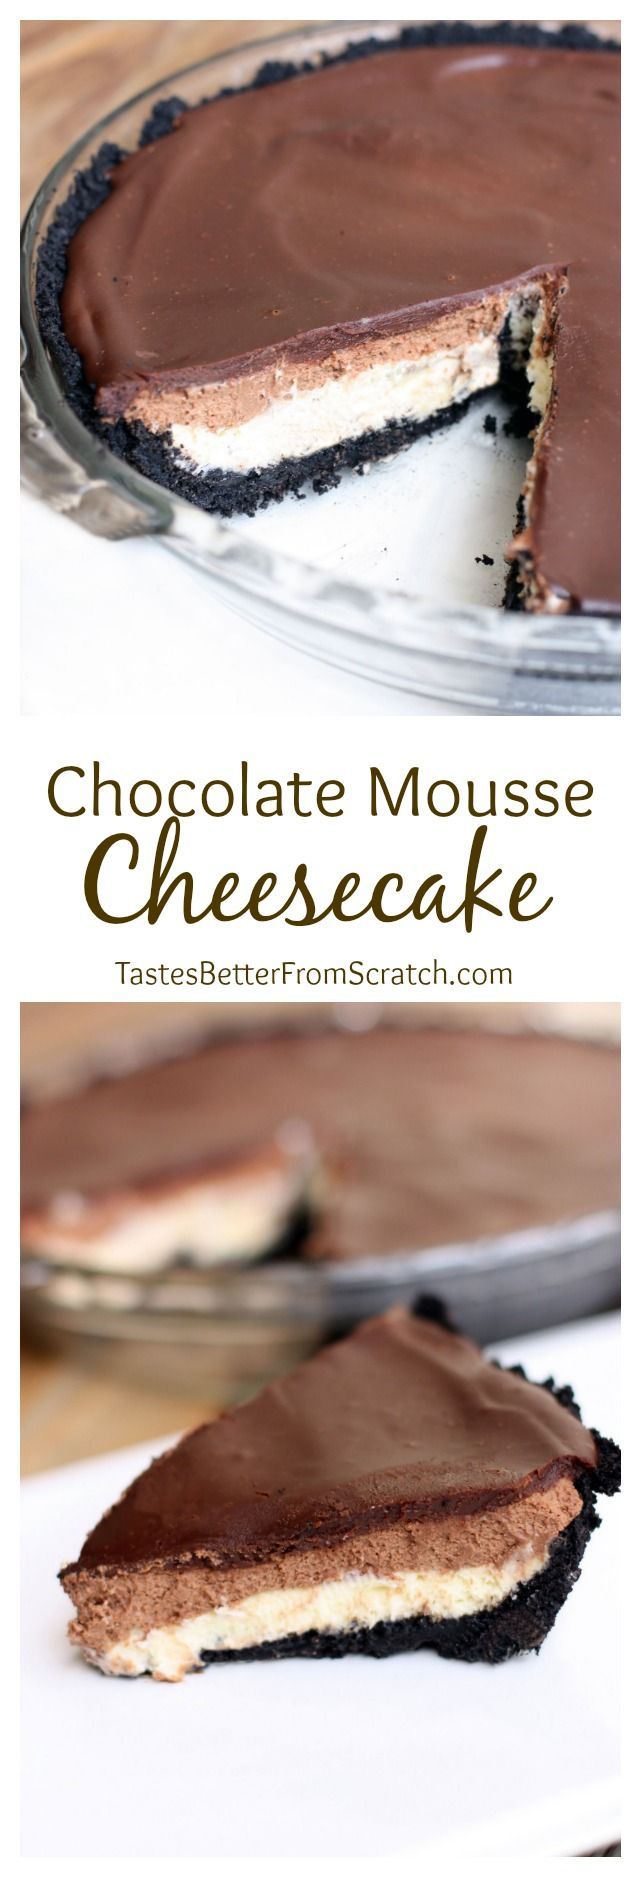 Chocolate Mousse Cheesecake recipe on TastesBetterFromScratch.com Oreo crust with a layer of cheesecake, chocolate mousse and chocolate ganache!